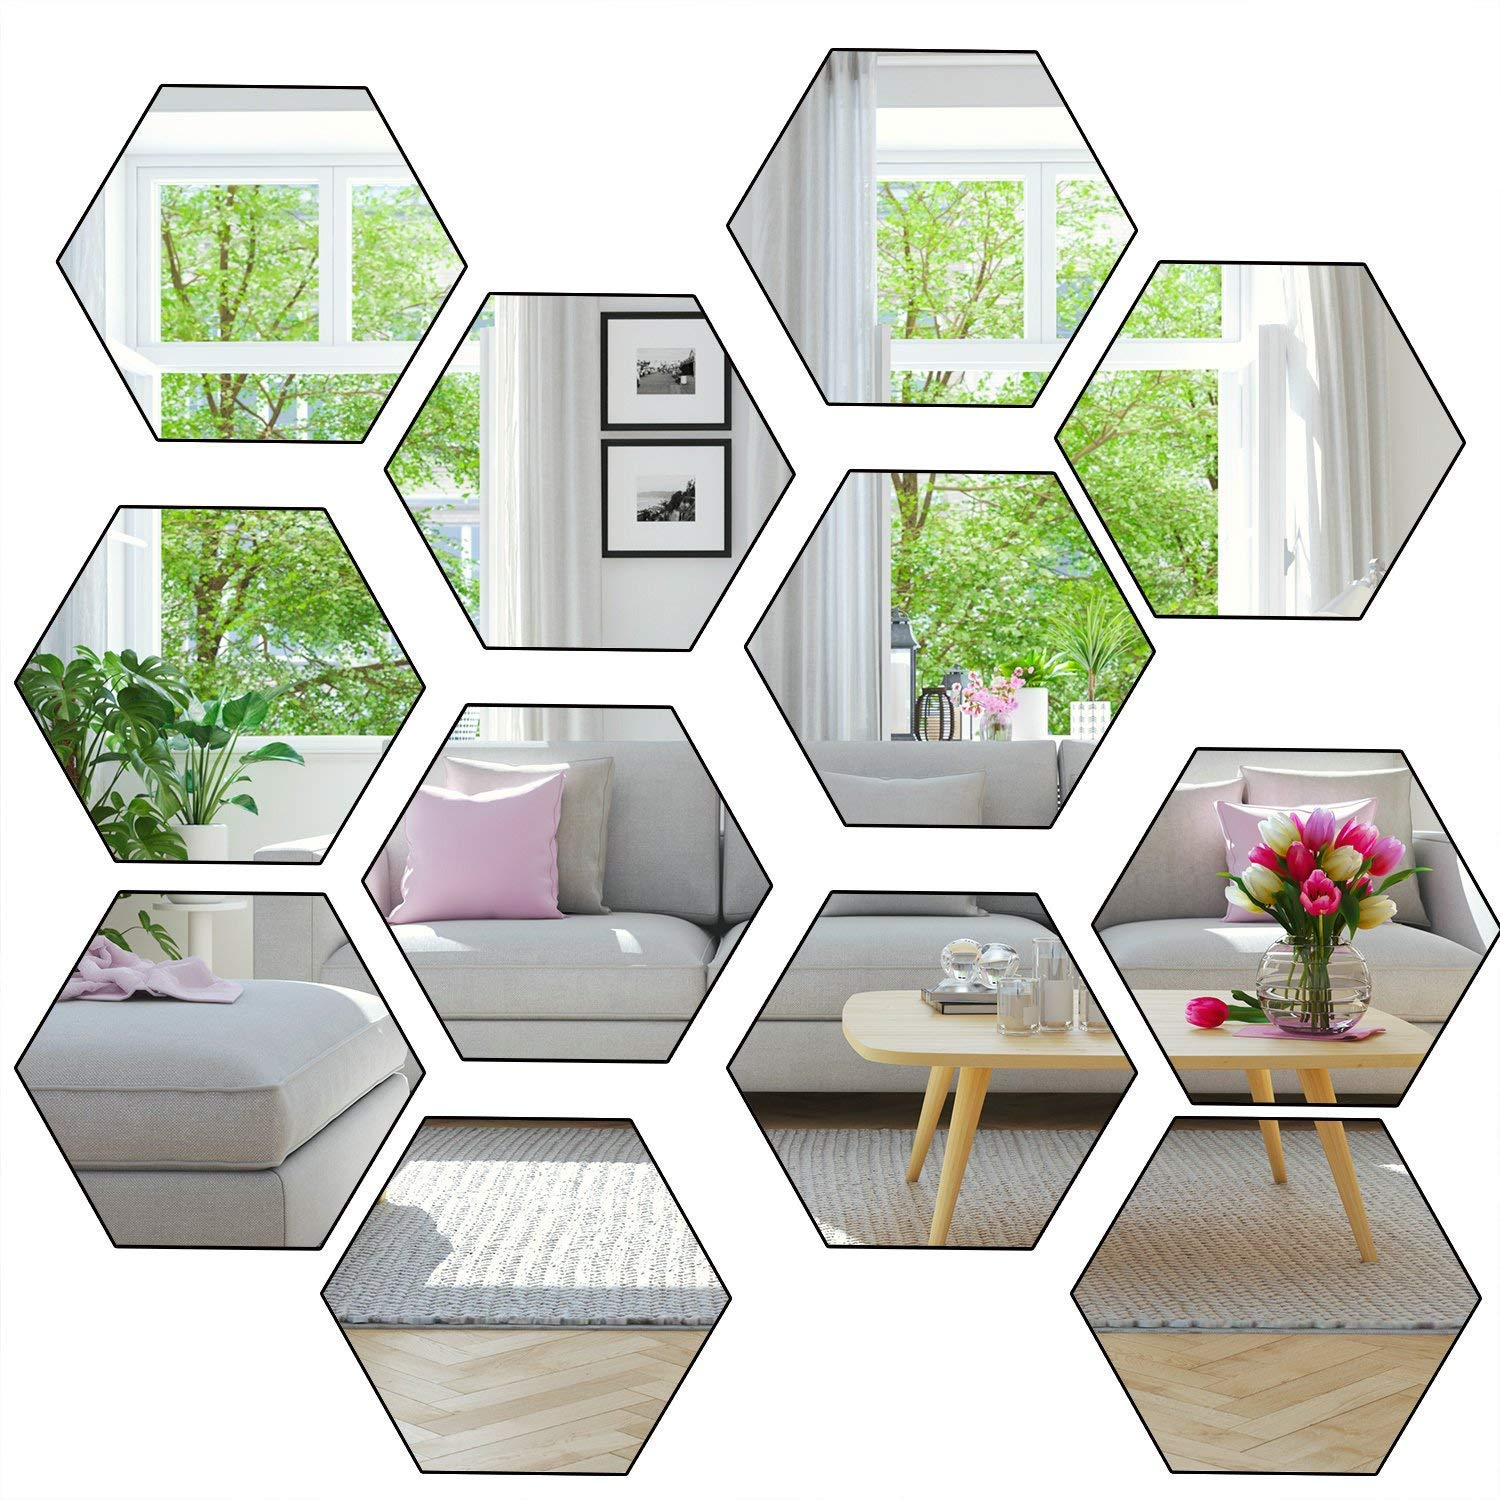 KimDaro Removable Acrylic Mirror Setting Wall Sticker Decal DIY Modern Decoration for Home Living Room Bedroom Decor (15 Pcs)